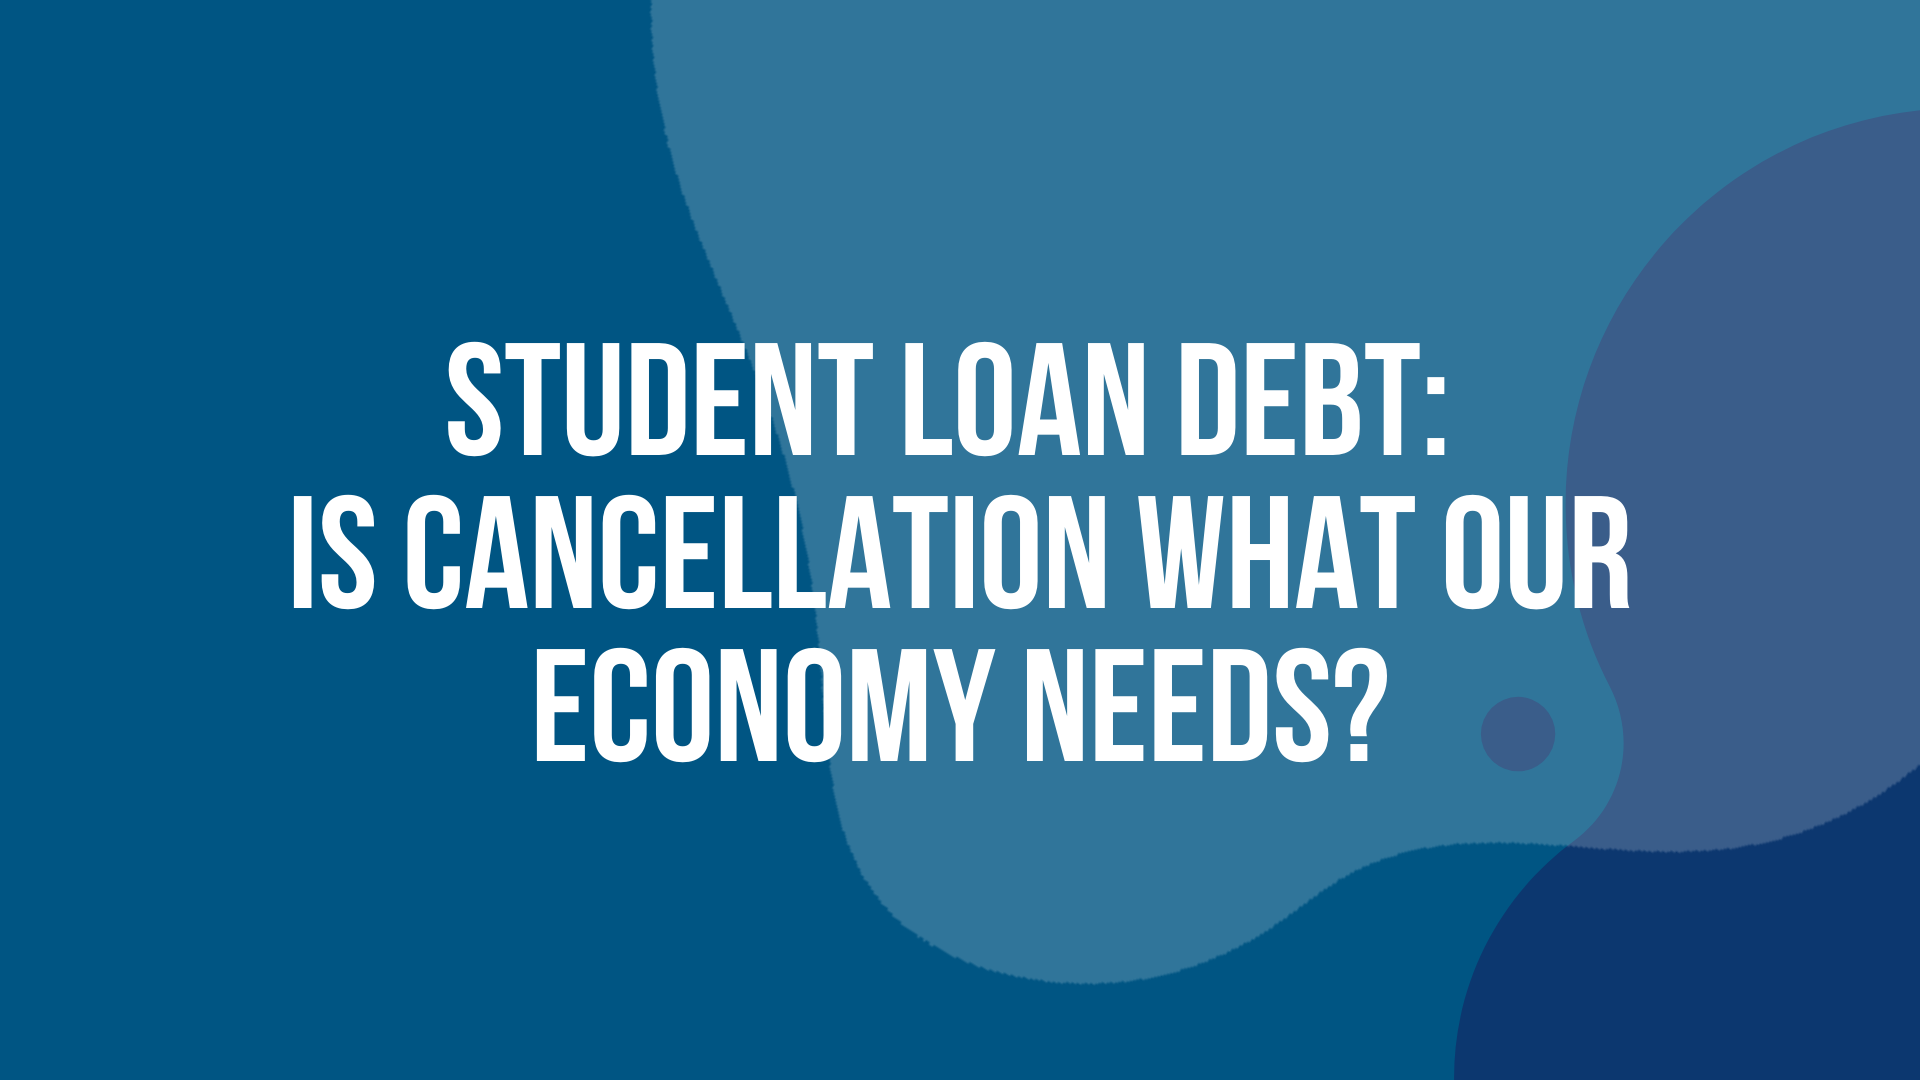 Student Loan Debt: Is Cancellation What Our Economy Needs?